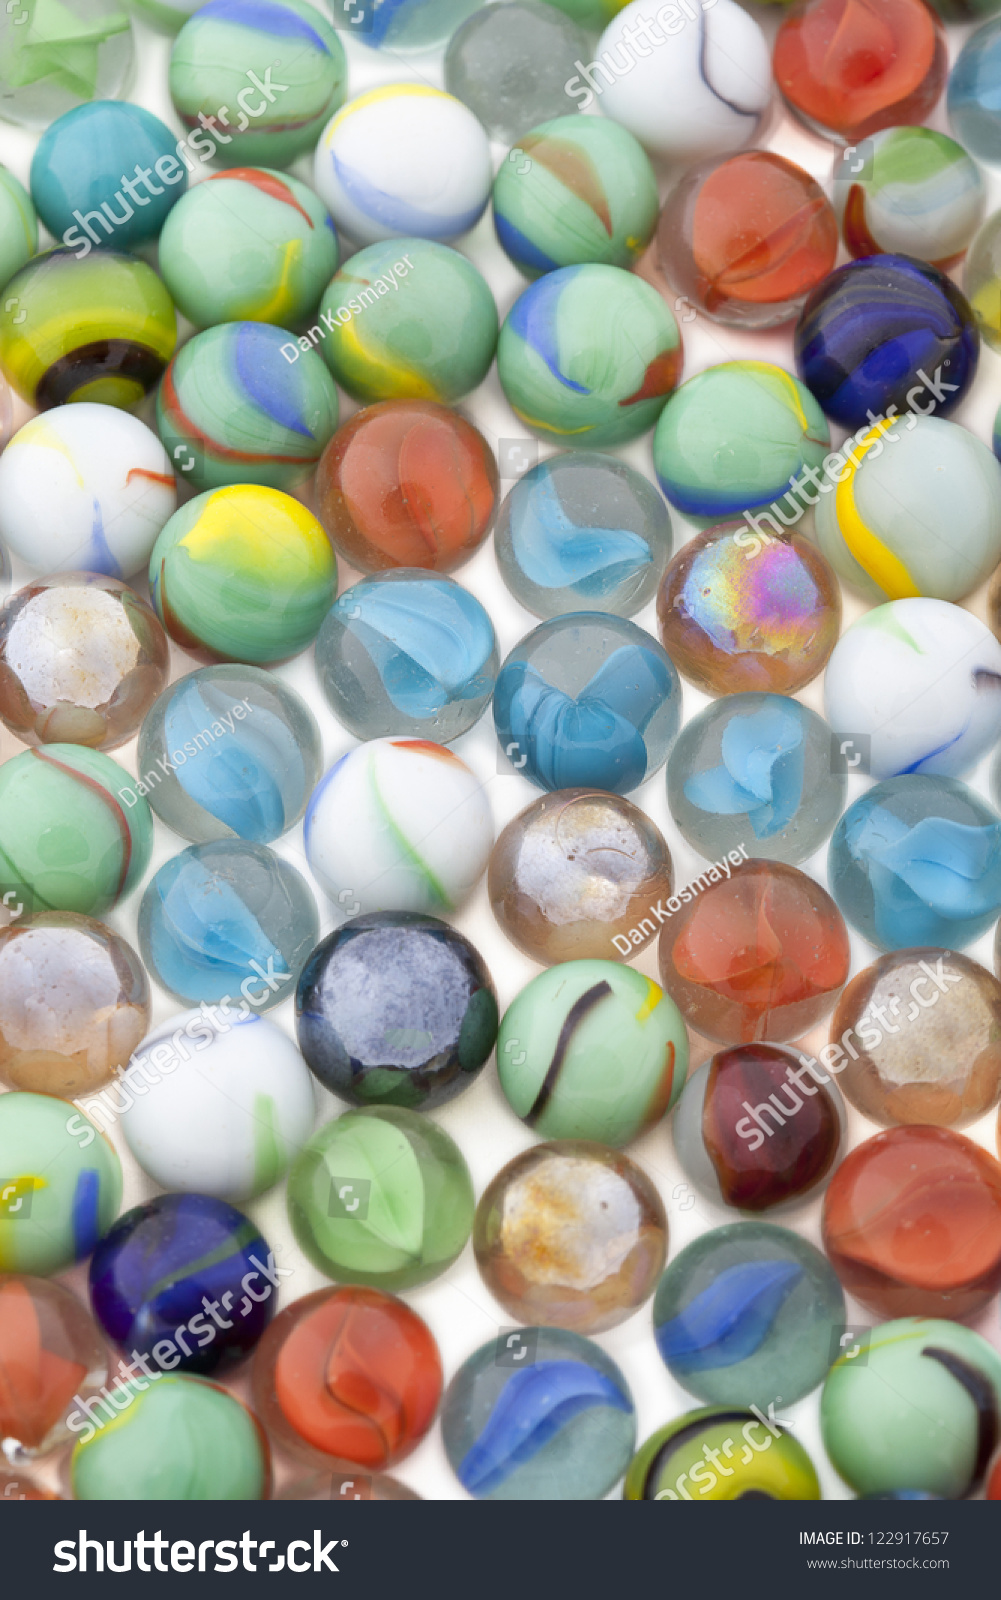 Colorful toy marbles collection in a background image #122917657